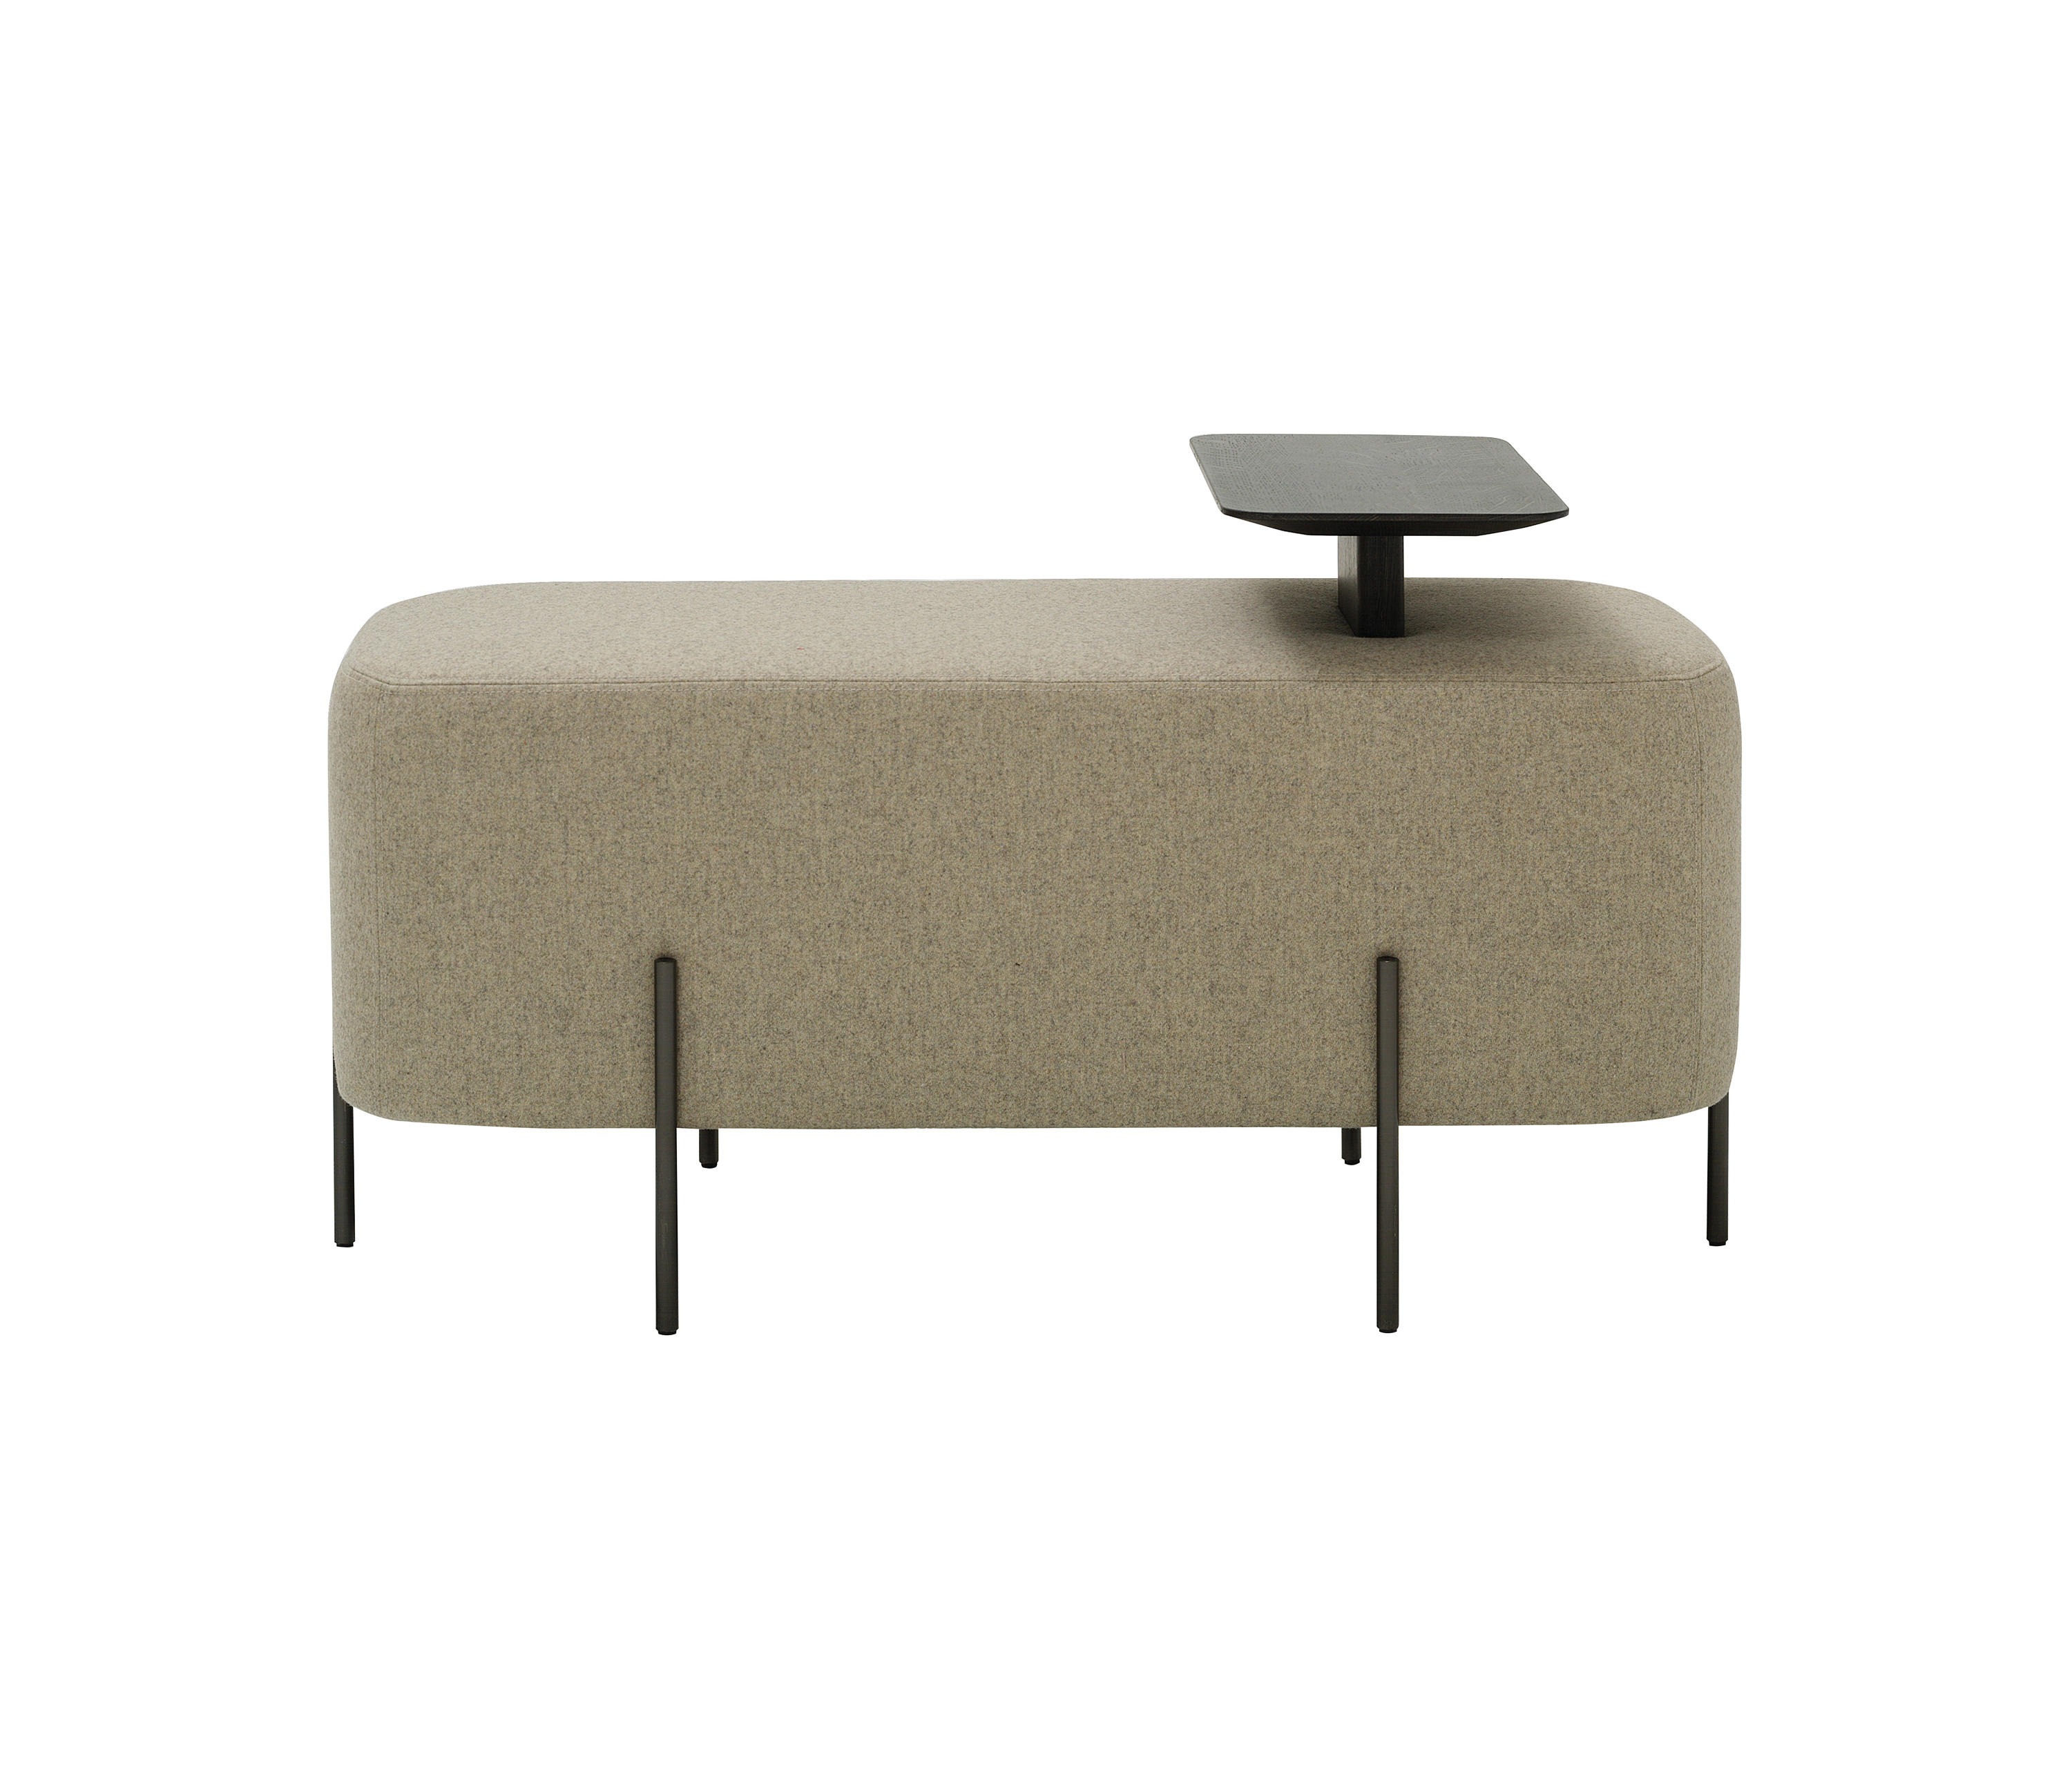 Elephant Waiting Area Benches From Sancal Architonic # Waiting Muebles